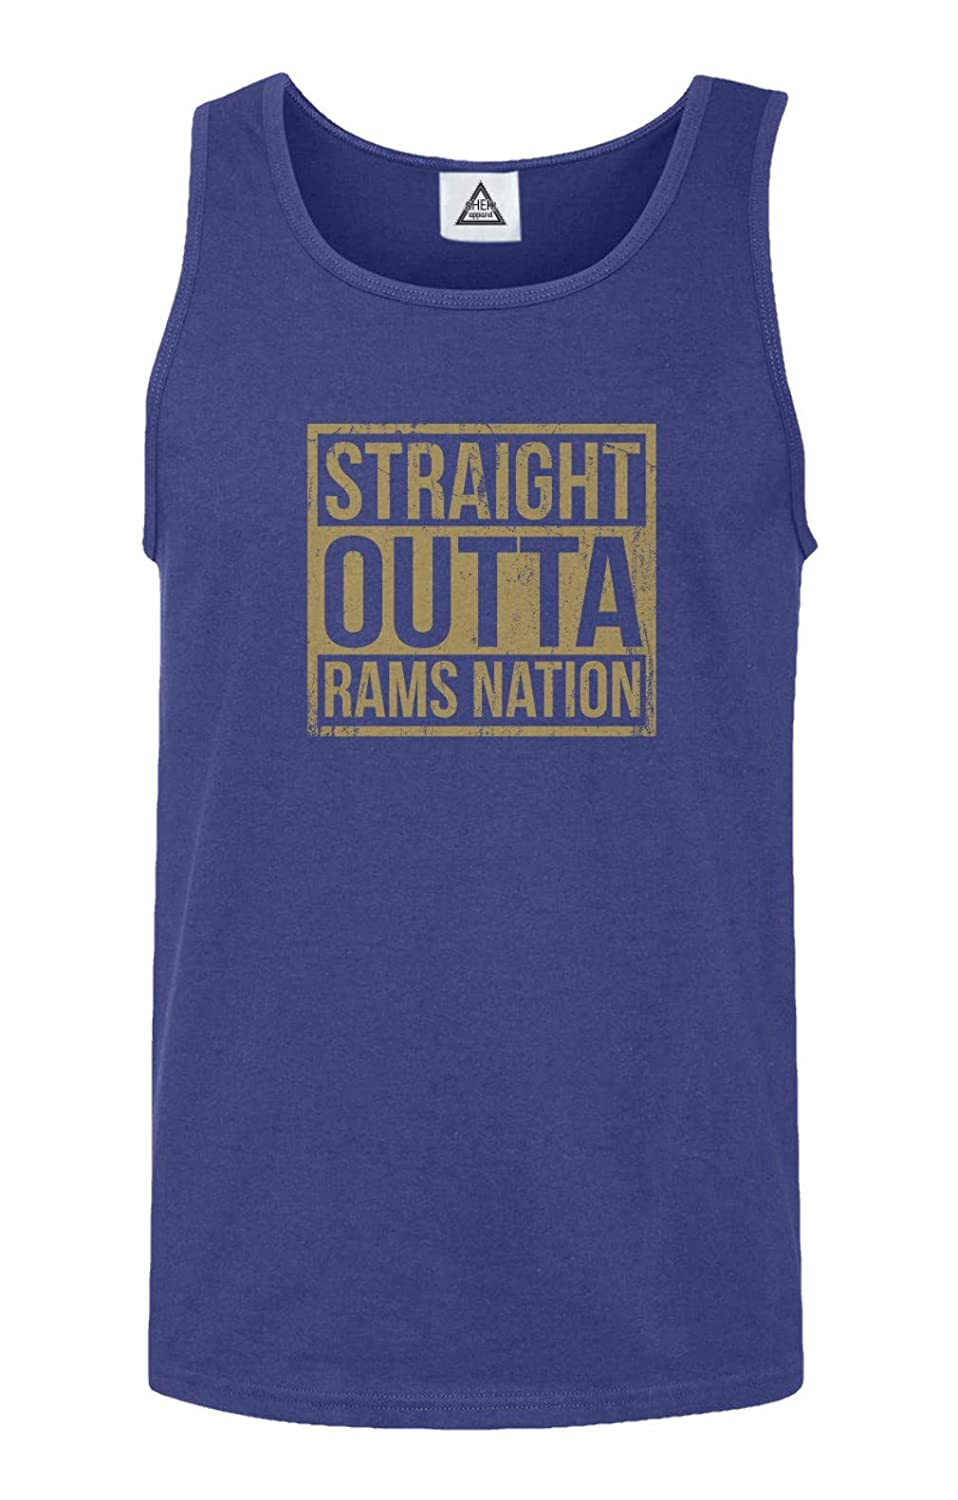 Straight Outta Rams Nation Football Tank Top